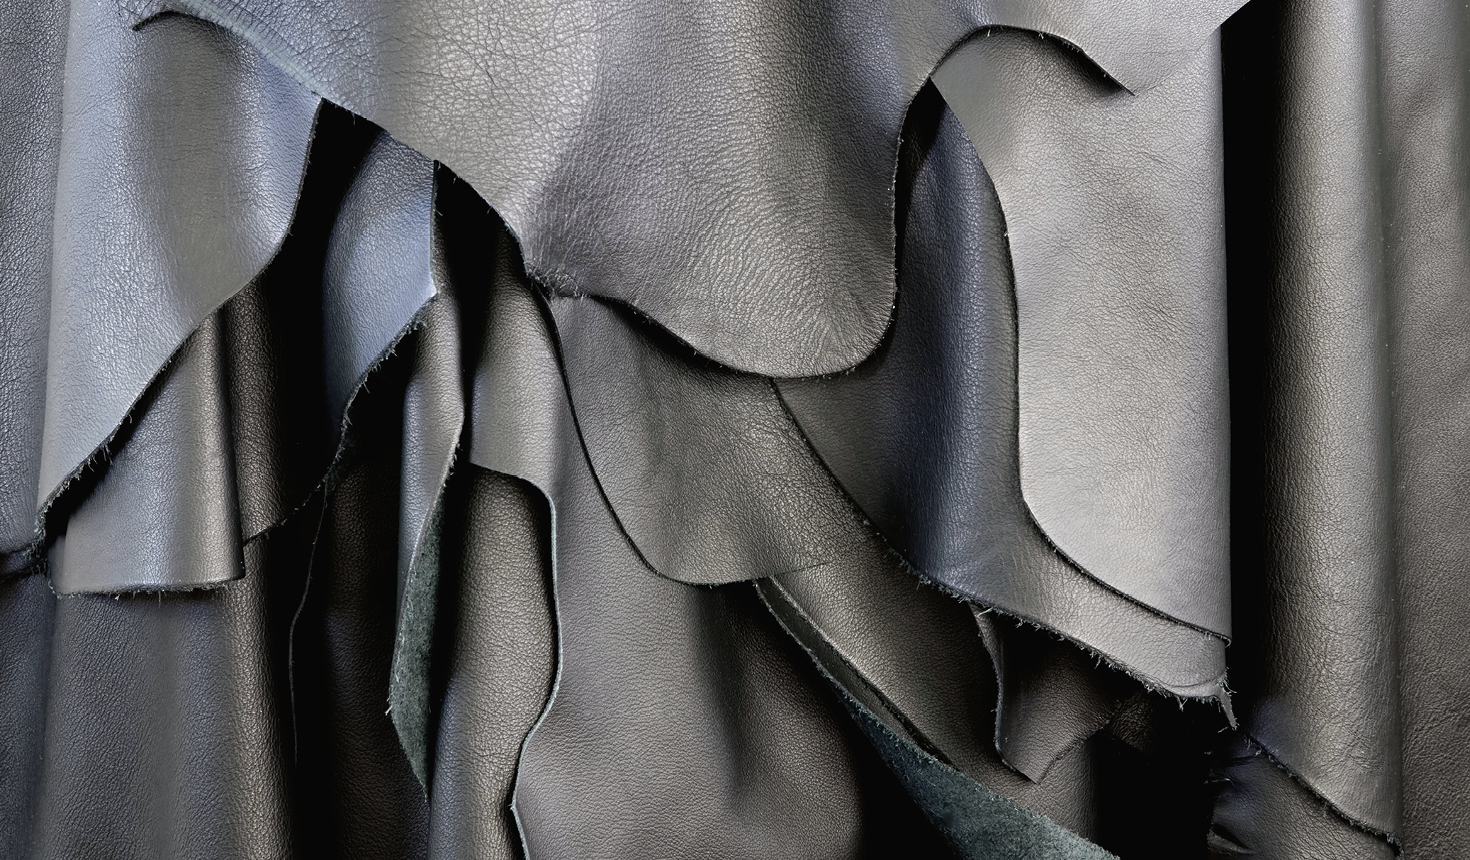 Materials research - fabric and leather - Giorgetti 1